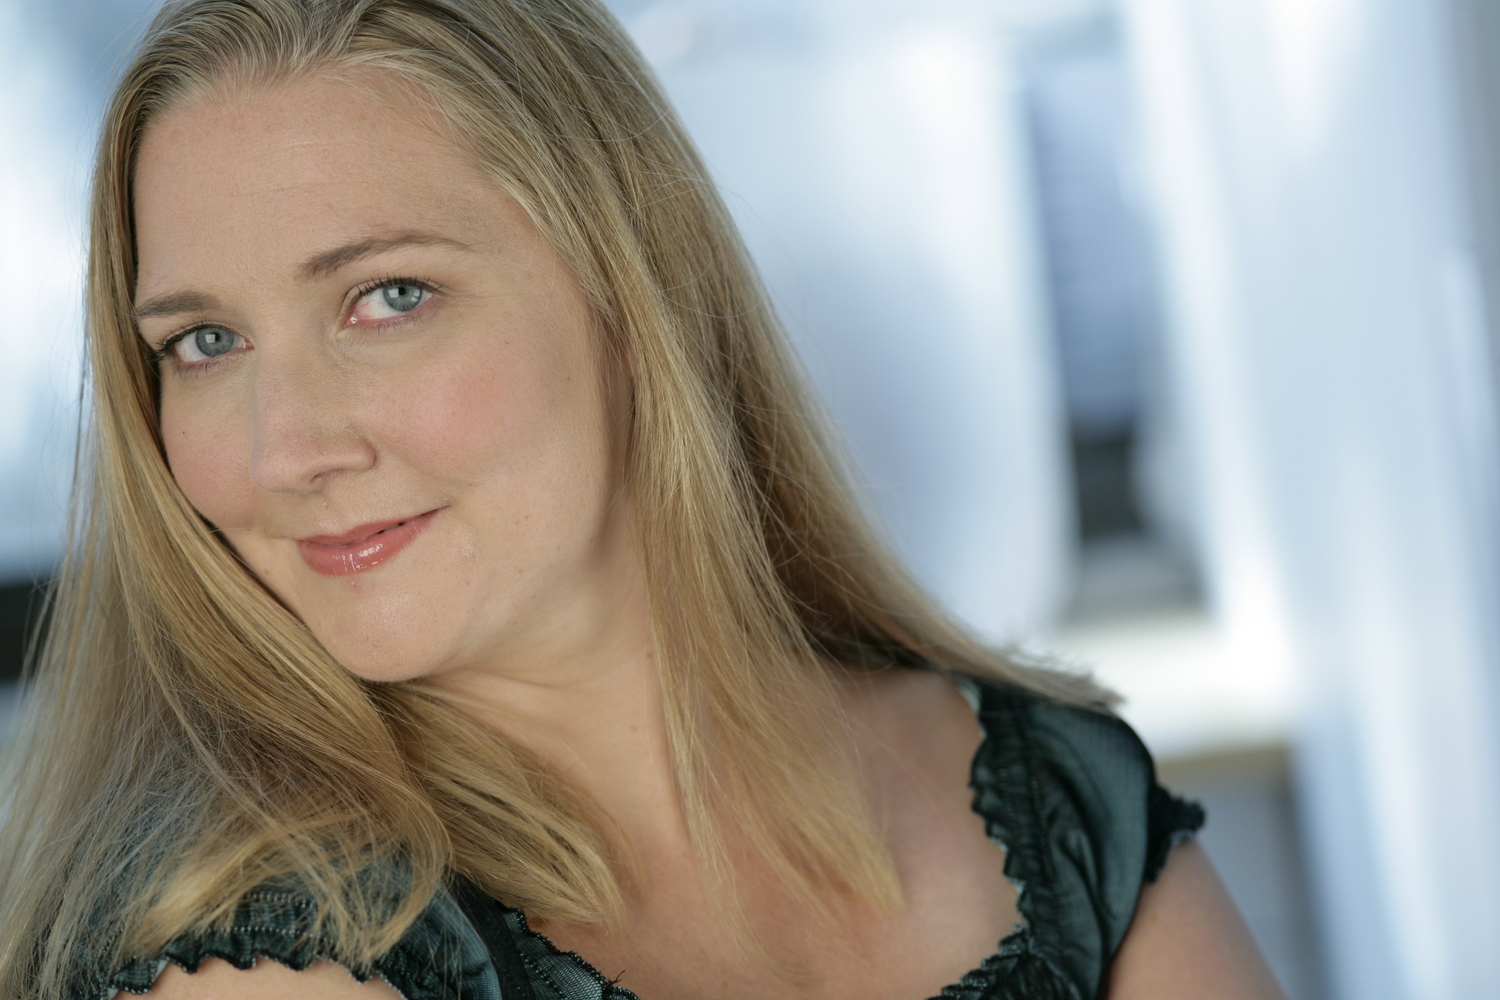 The official site of coloratura soprano Lindsey Blackhurst